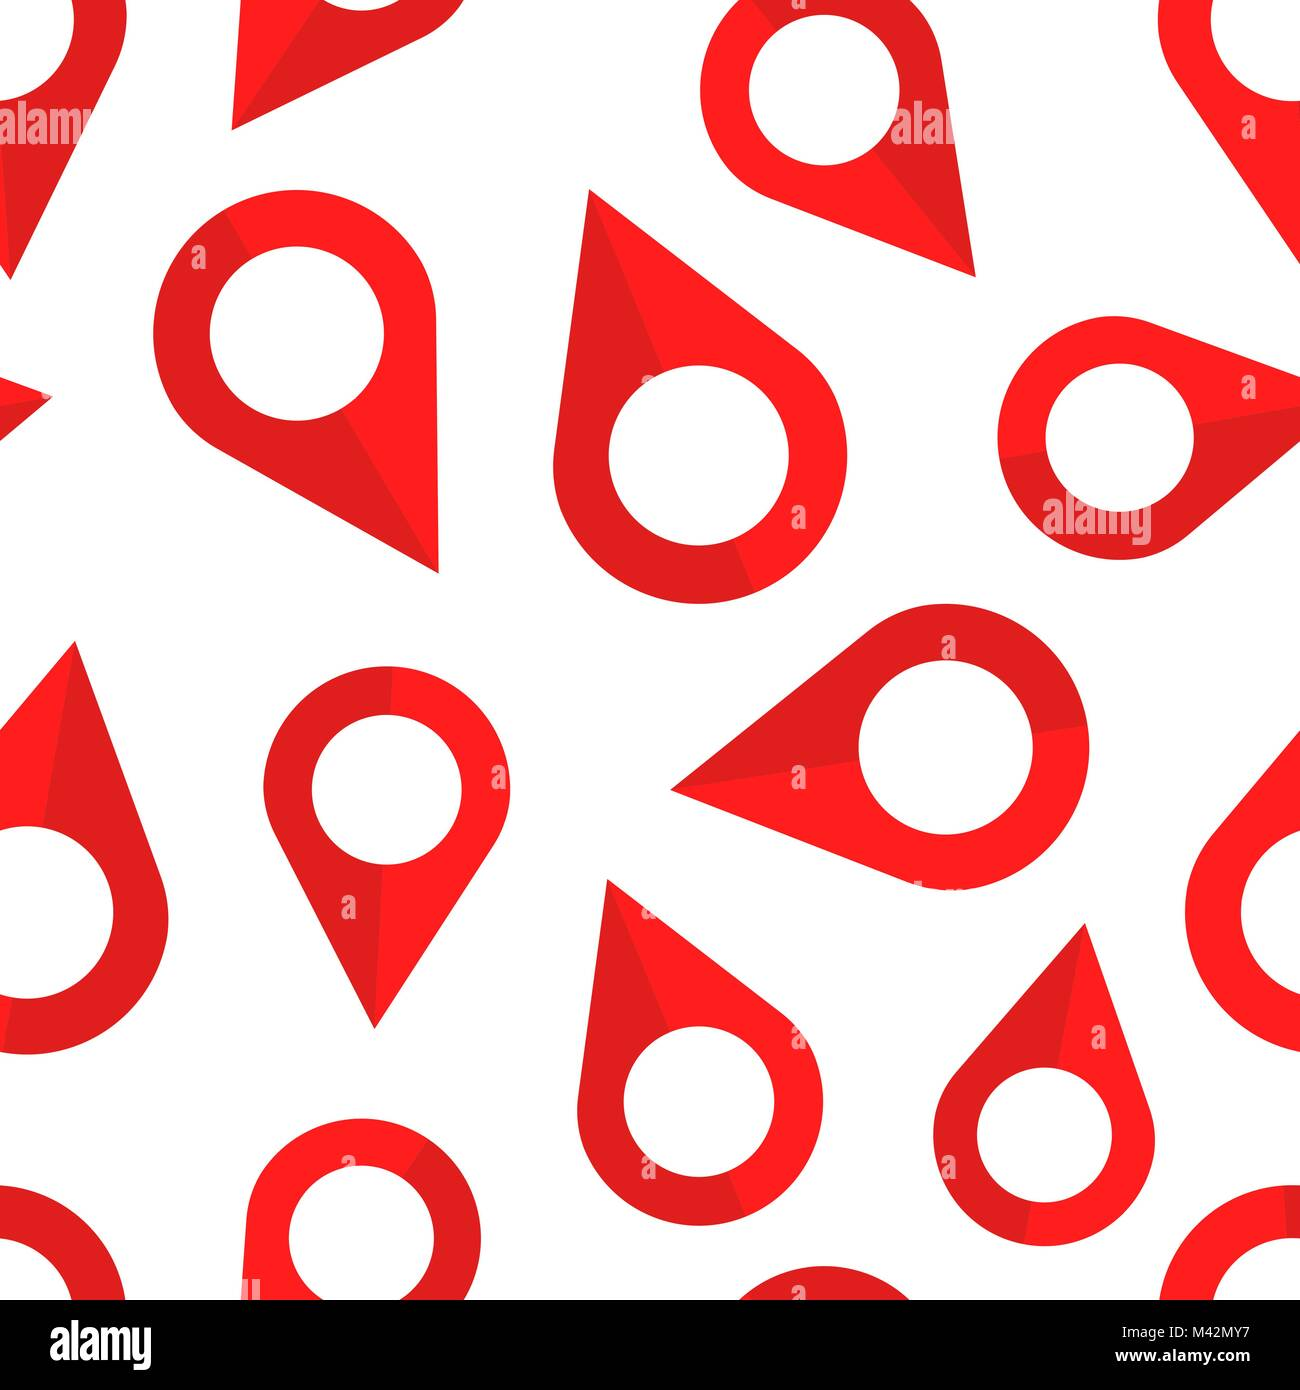 Pin location seamless pattern background. Business flat vector illustration. Navigation map, gps concept symbol Stock Vector